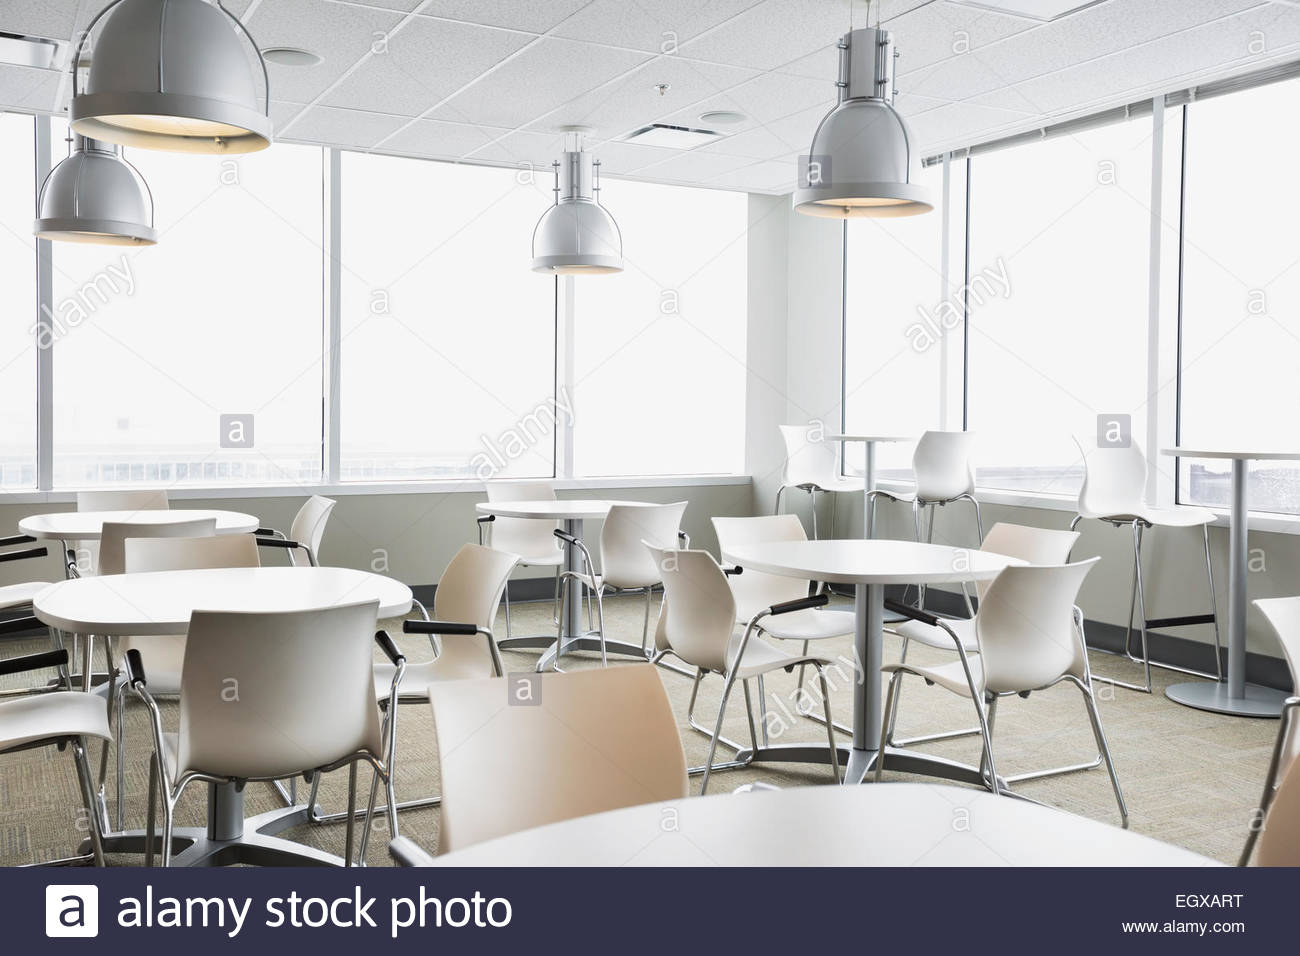 Empty white cafeteria tables - Stock Image